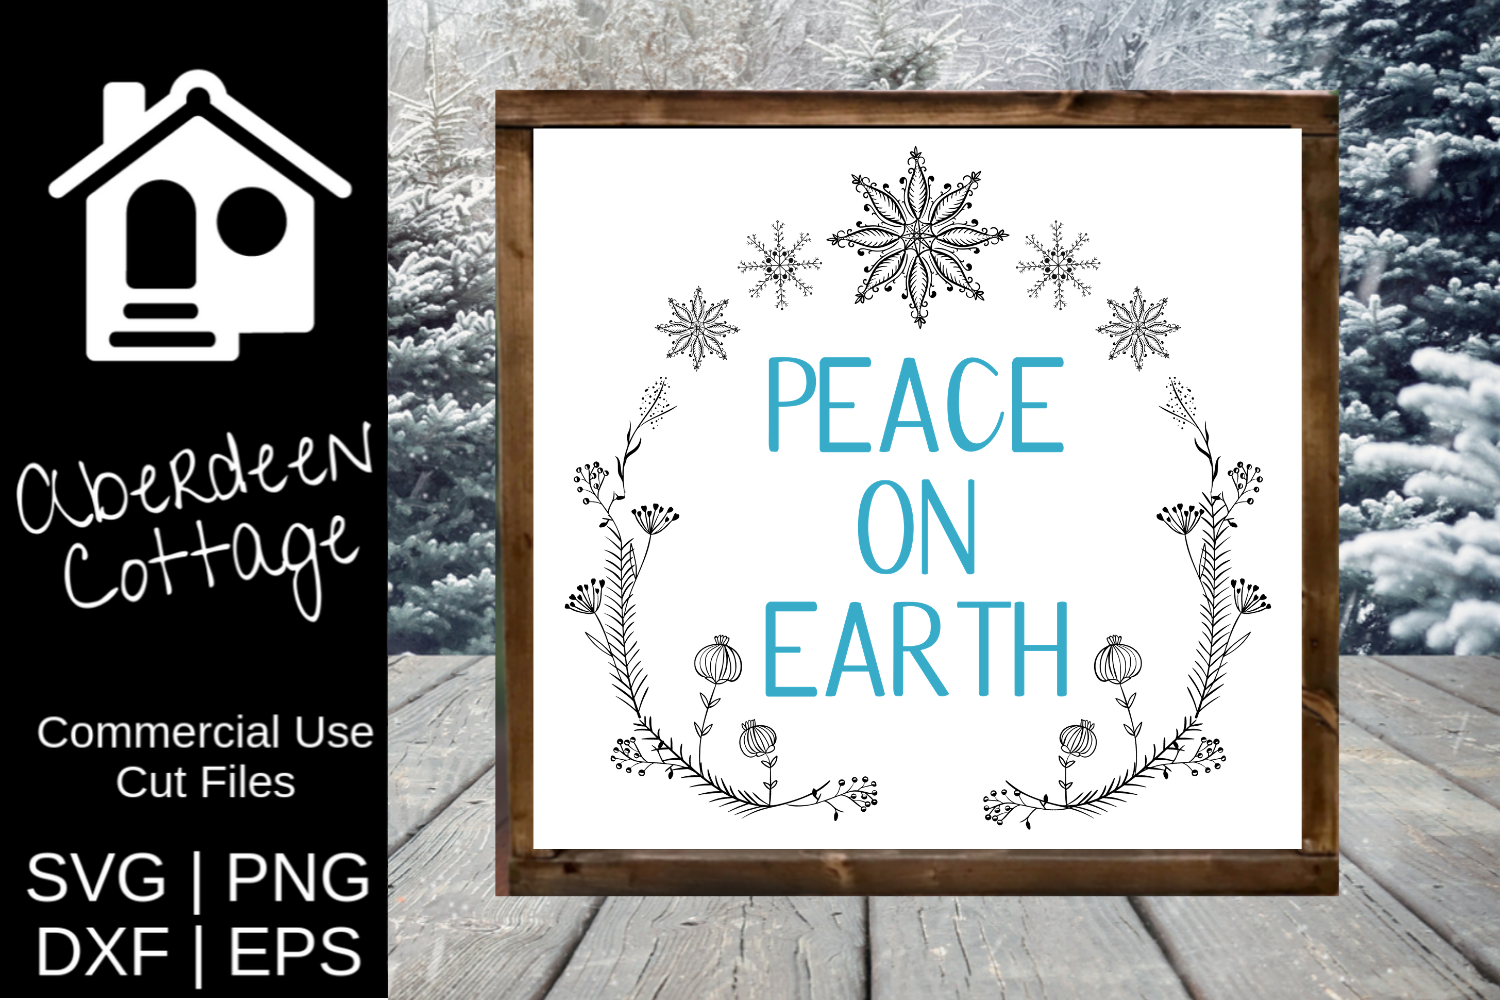 Peace On Earth 3 SVG | PNG | DXF | EPS example image 2